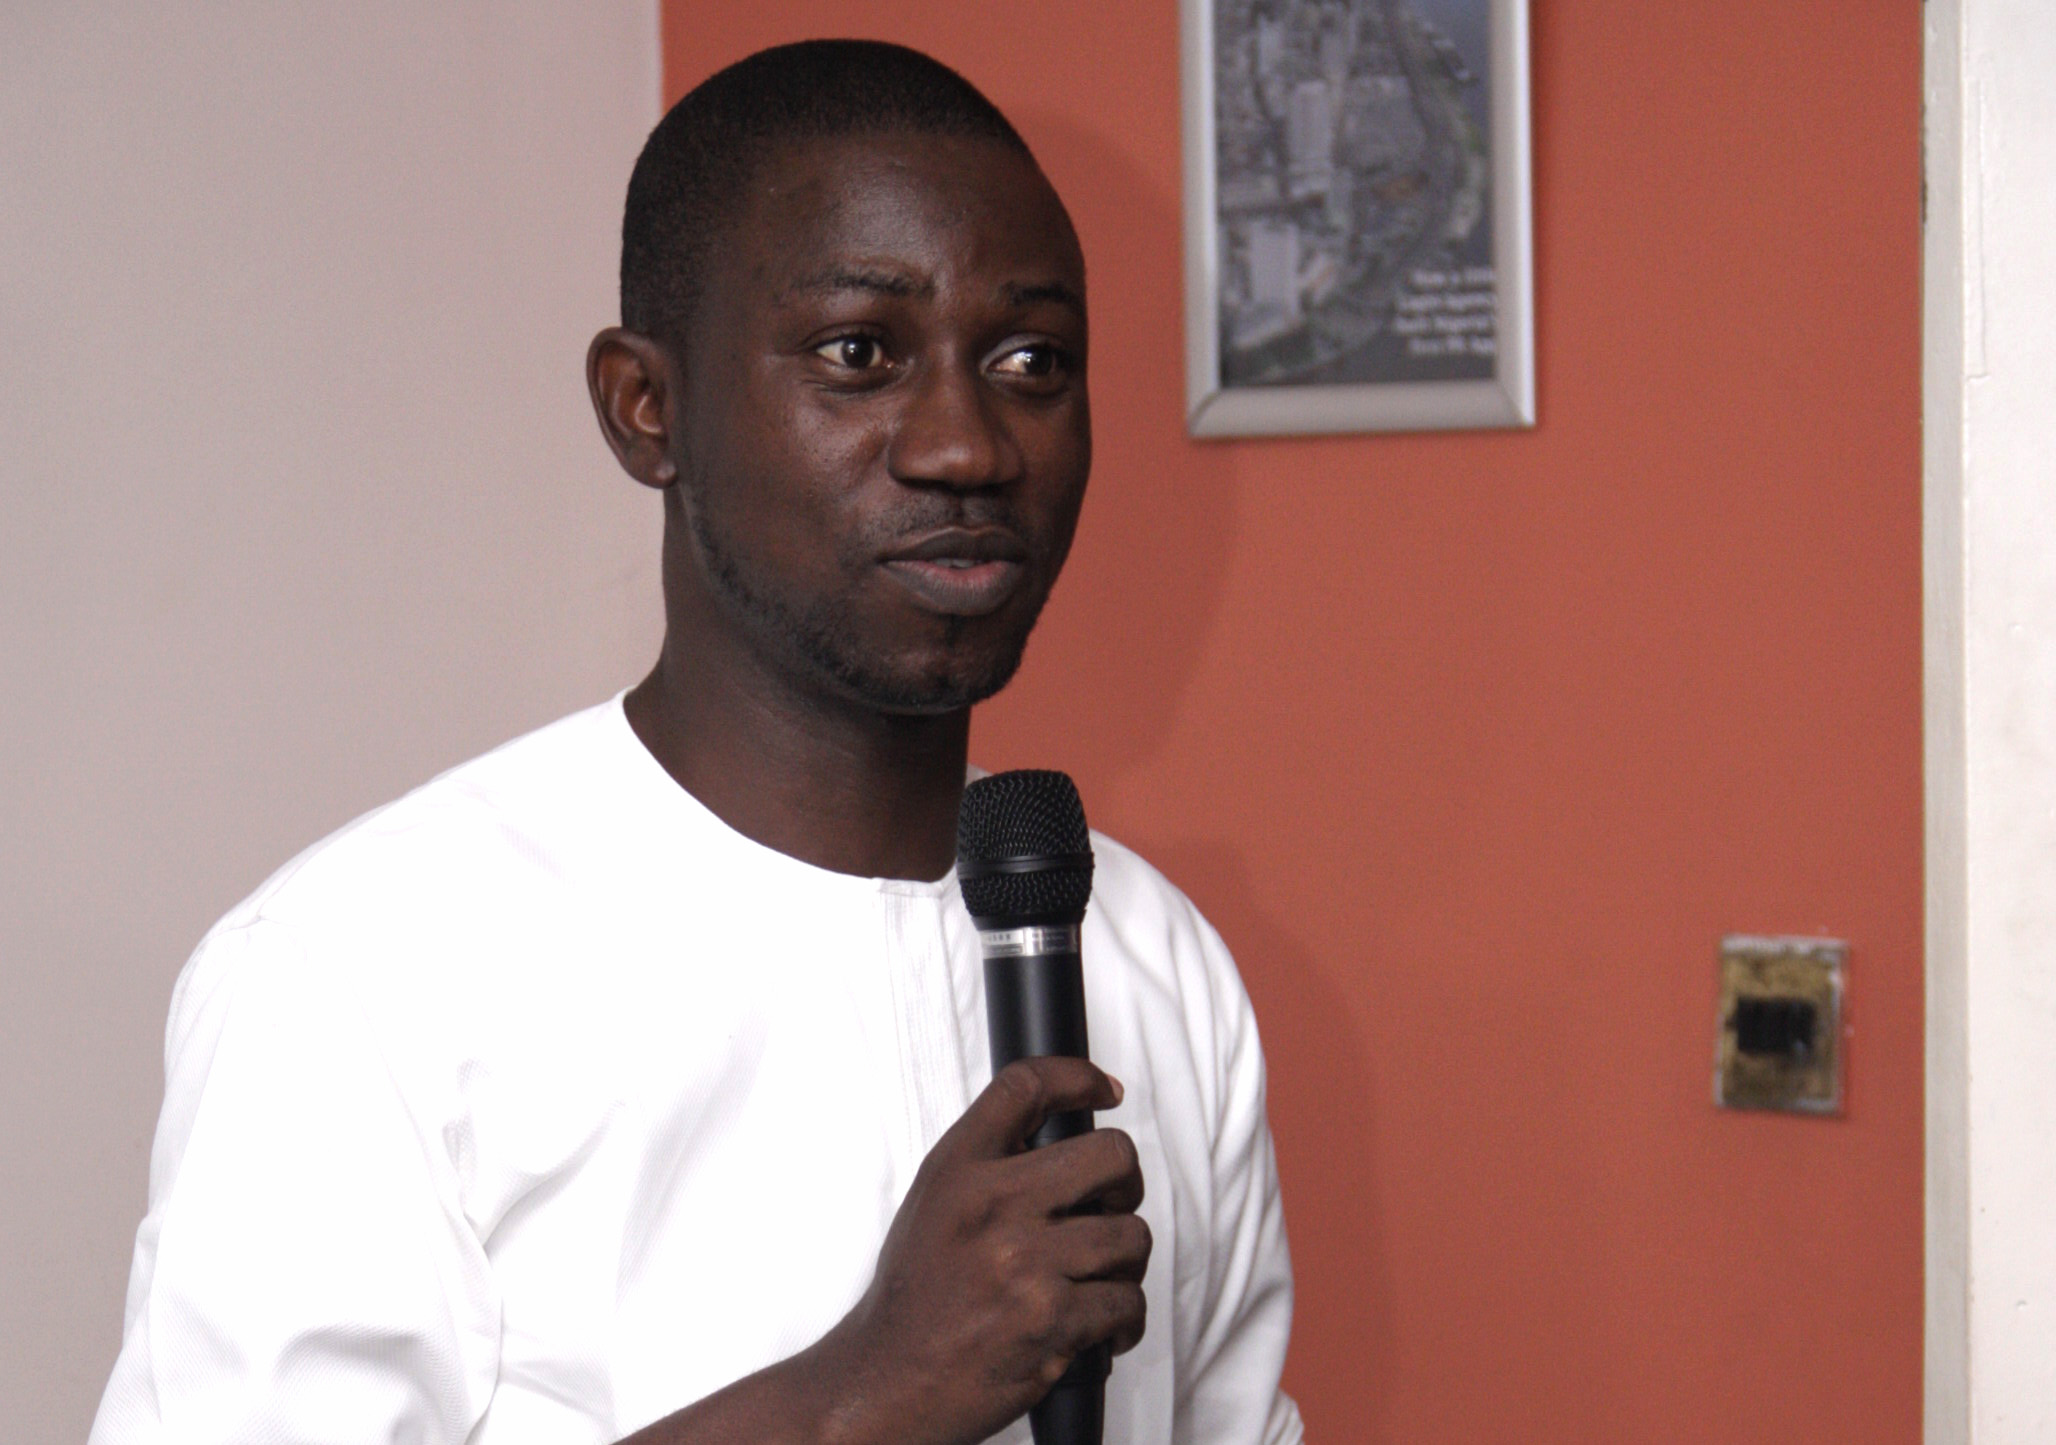 Digital Marketing must consider socio-cultural inclinations of more African audiences – Adekunle